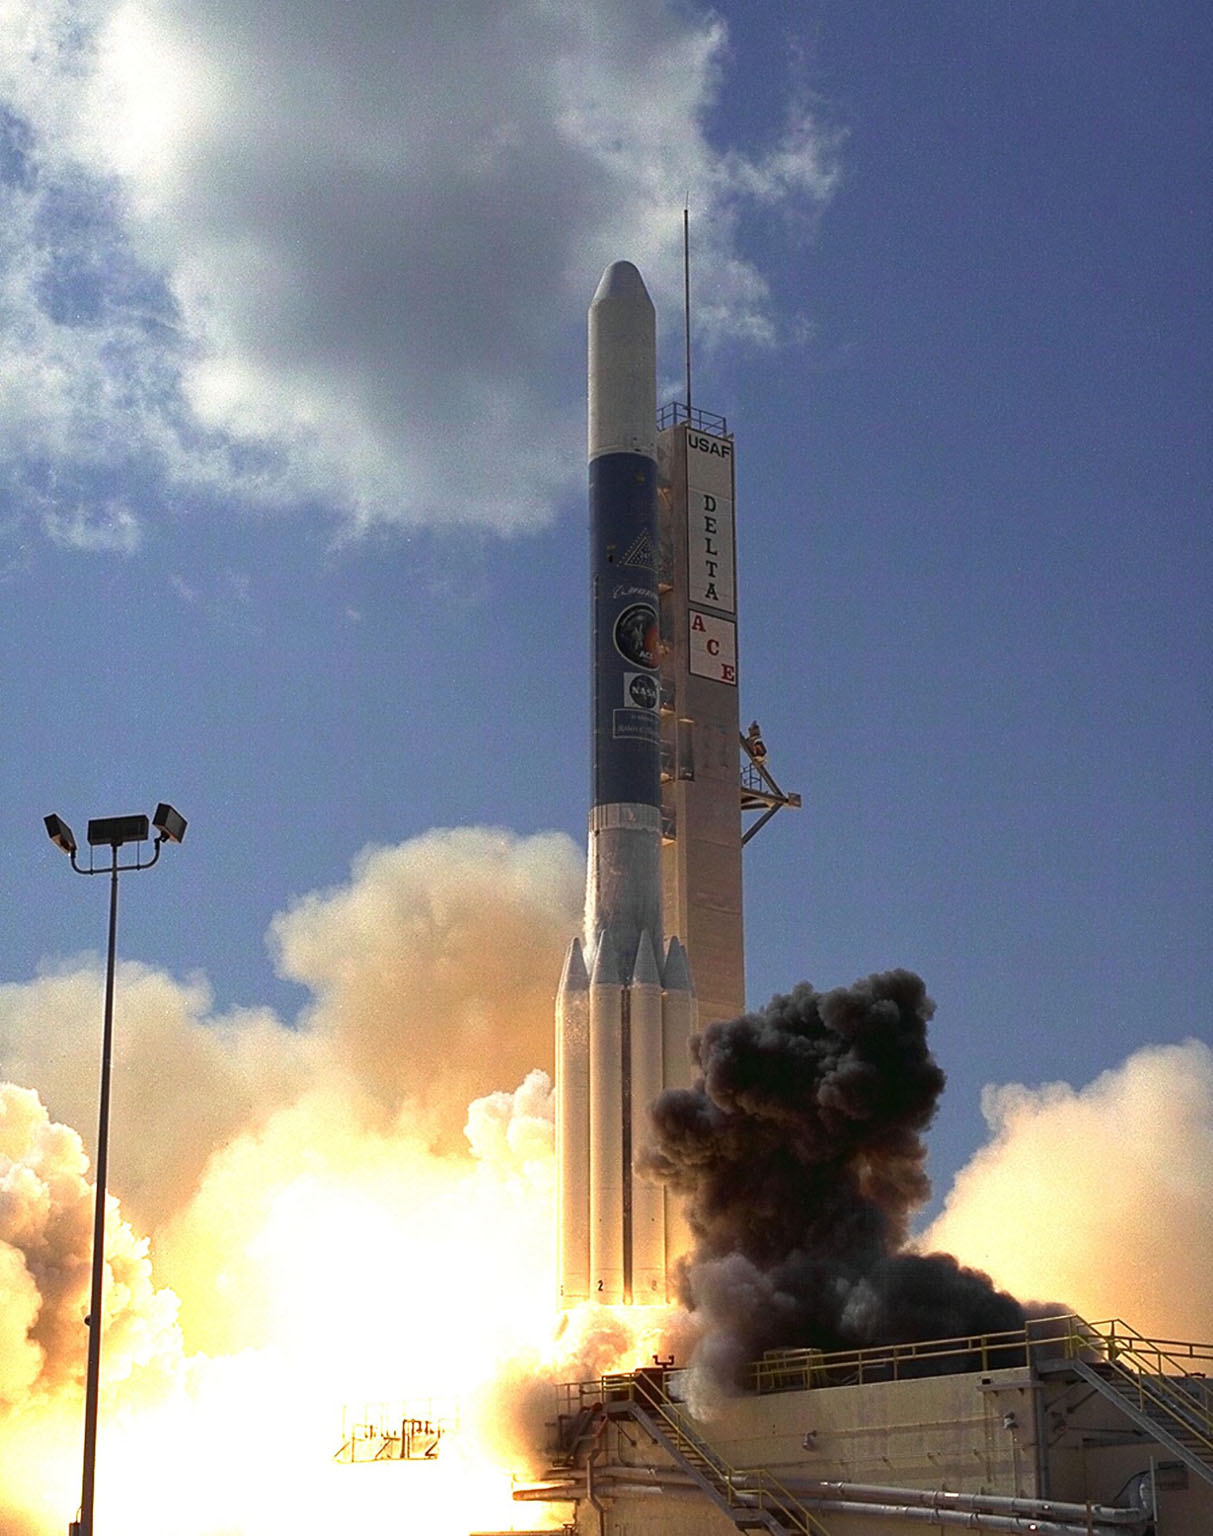 A Boeing Delta II expendable launch vehicle lifts off with NASA?s Advanced Composition Explorer (ACE) observatory at 10:39 a.m. EDT, on Aug. 25, 1997, from Launch Complex 17A, Cape Canaveral Air Station. This is the second Delta launch under the Boeing name and the first from Cape Canaveral. Launch was scrubbed one day by Air Force range safety personnel because two commercial fishing vessels were within the Delta?s launch danger area. The ACE spacecraft will study low-energy particles of solar origin and high-energy galactic particles on its one-million-mile journey. The collecting power of instruments aboard ACE is 10 to 1,000 times greater than anything previously flown to collect similar data by NASA. Study of these energetic particles may contribute to our understanding of the formation and evolution of the solar system. ACE has a two-year minimum mission lifetime and a goal of five years of service. ACE was built for NASA by the Johns Hopkins Applied Physics Laboratory and is managed by the Explorer Project Office at NASA's Goddard Space Flight Center. The lead scientific institution is the California Institute of Technology (Caltech) in Pasadena, Calif